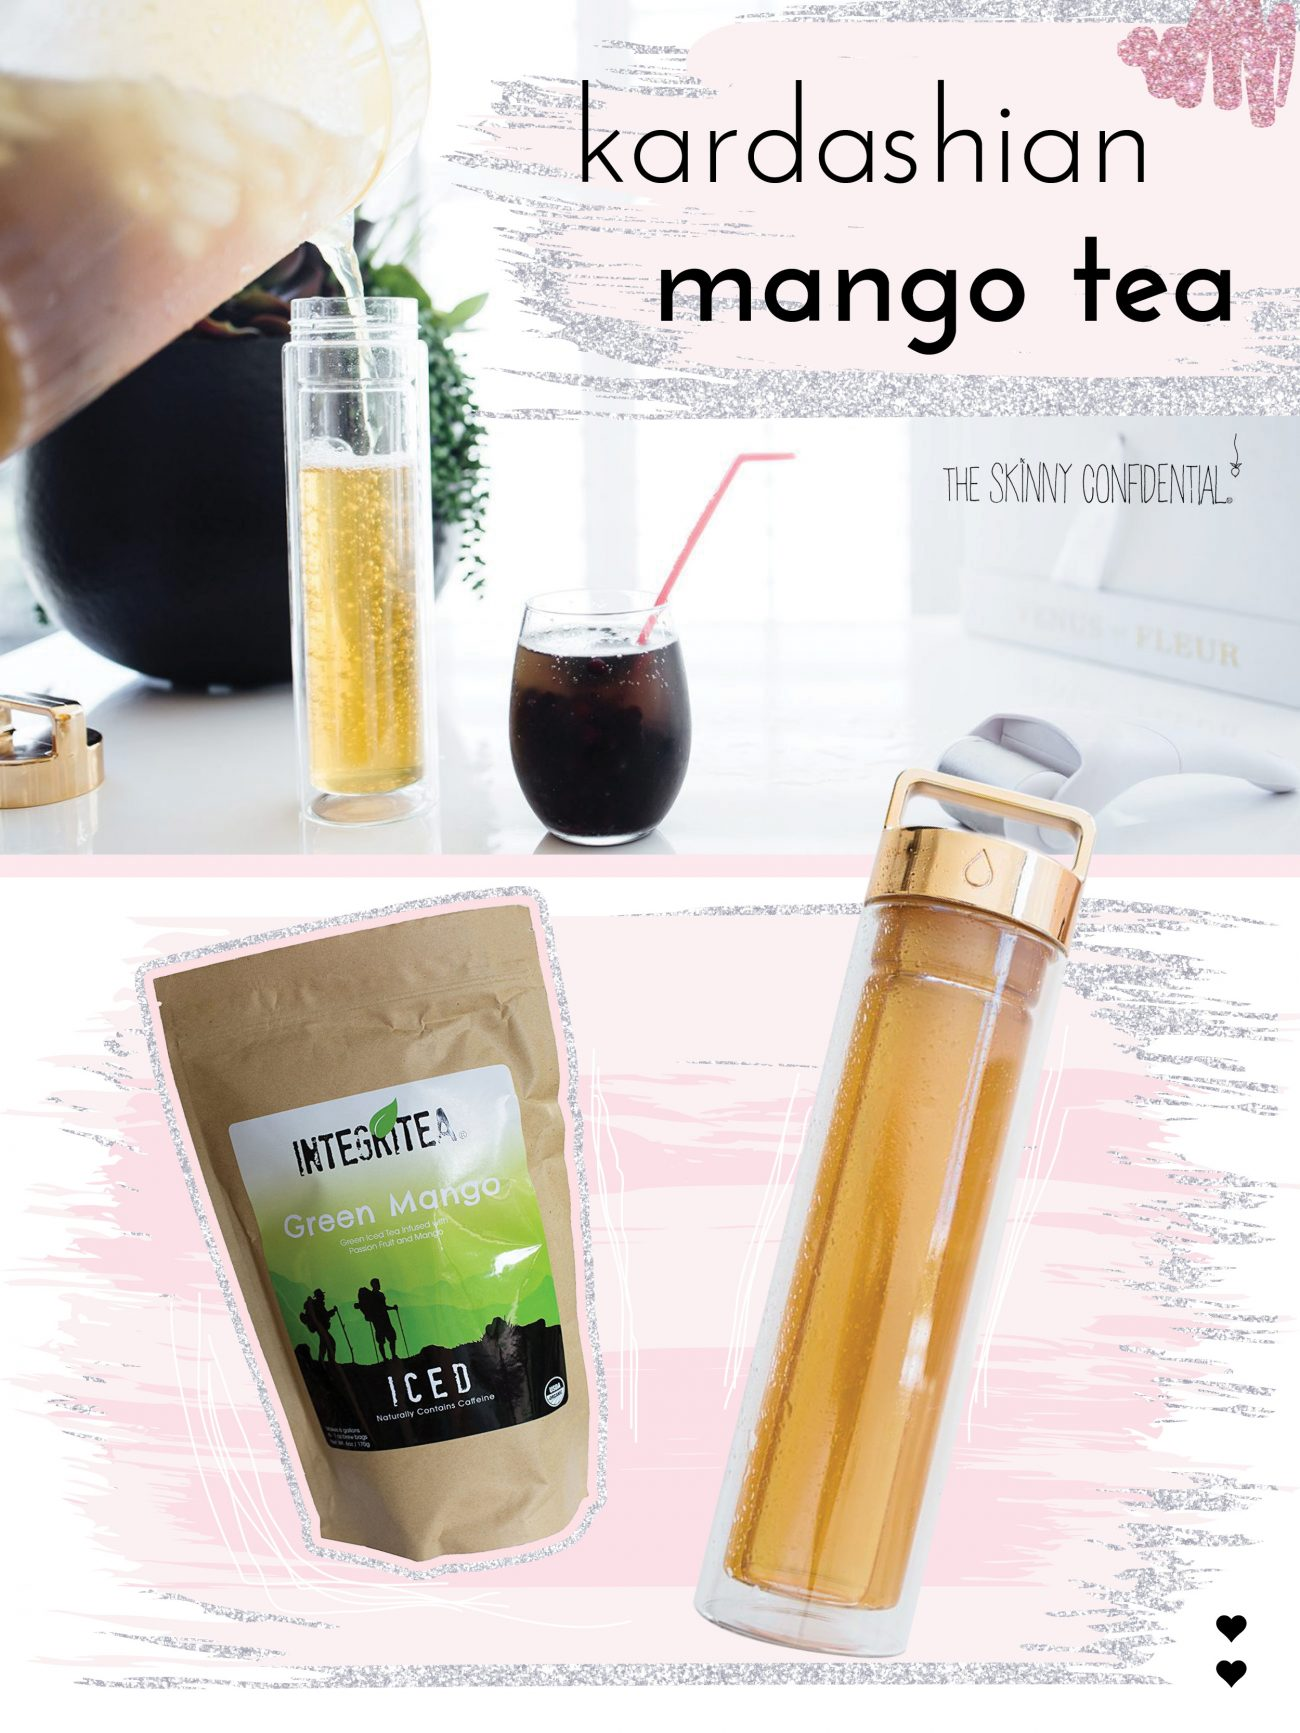 green mango tea kardashian drink | by the skinny confidential